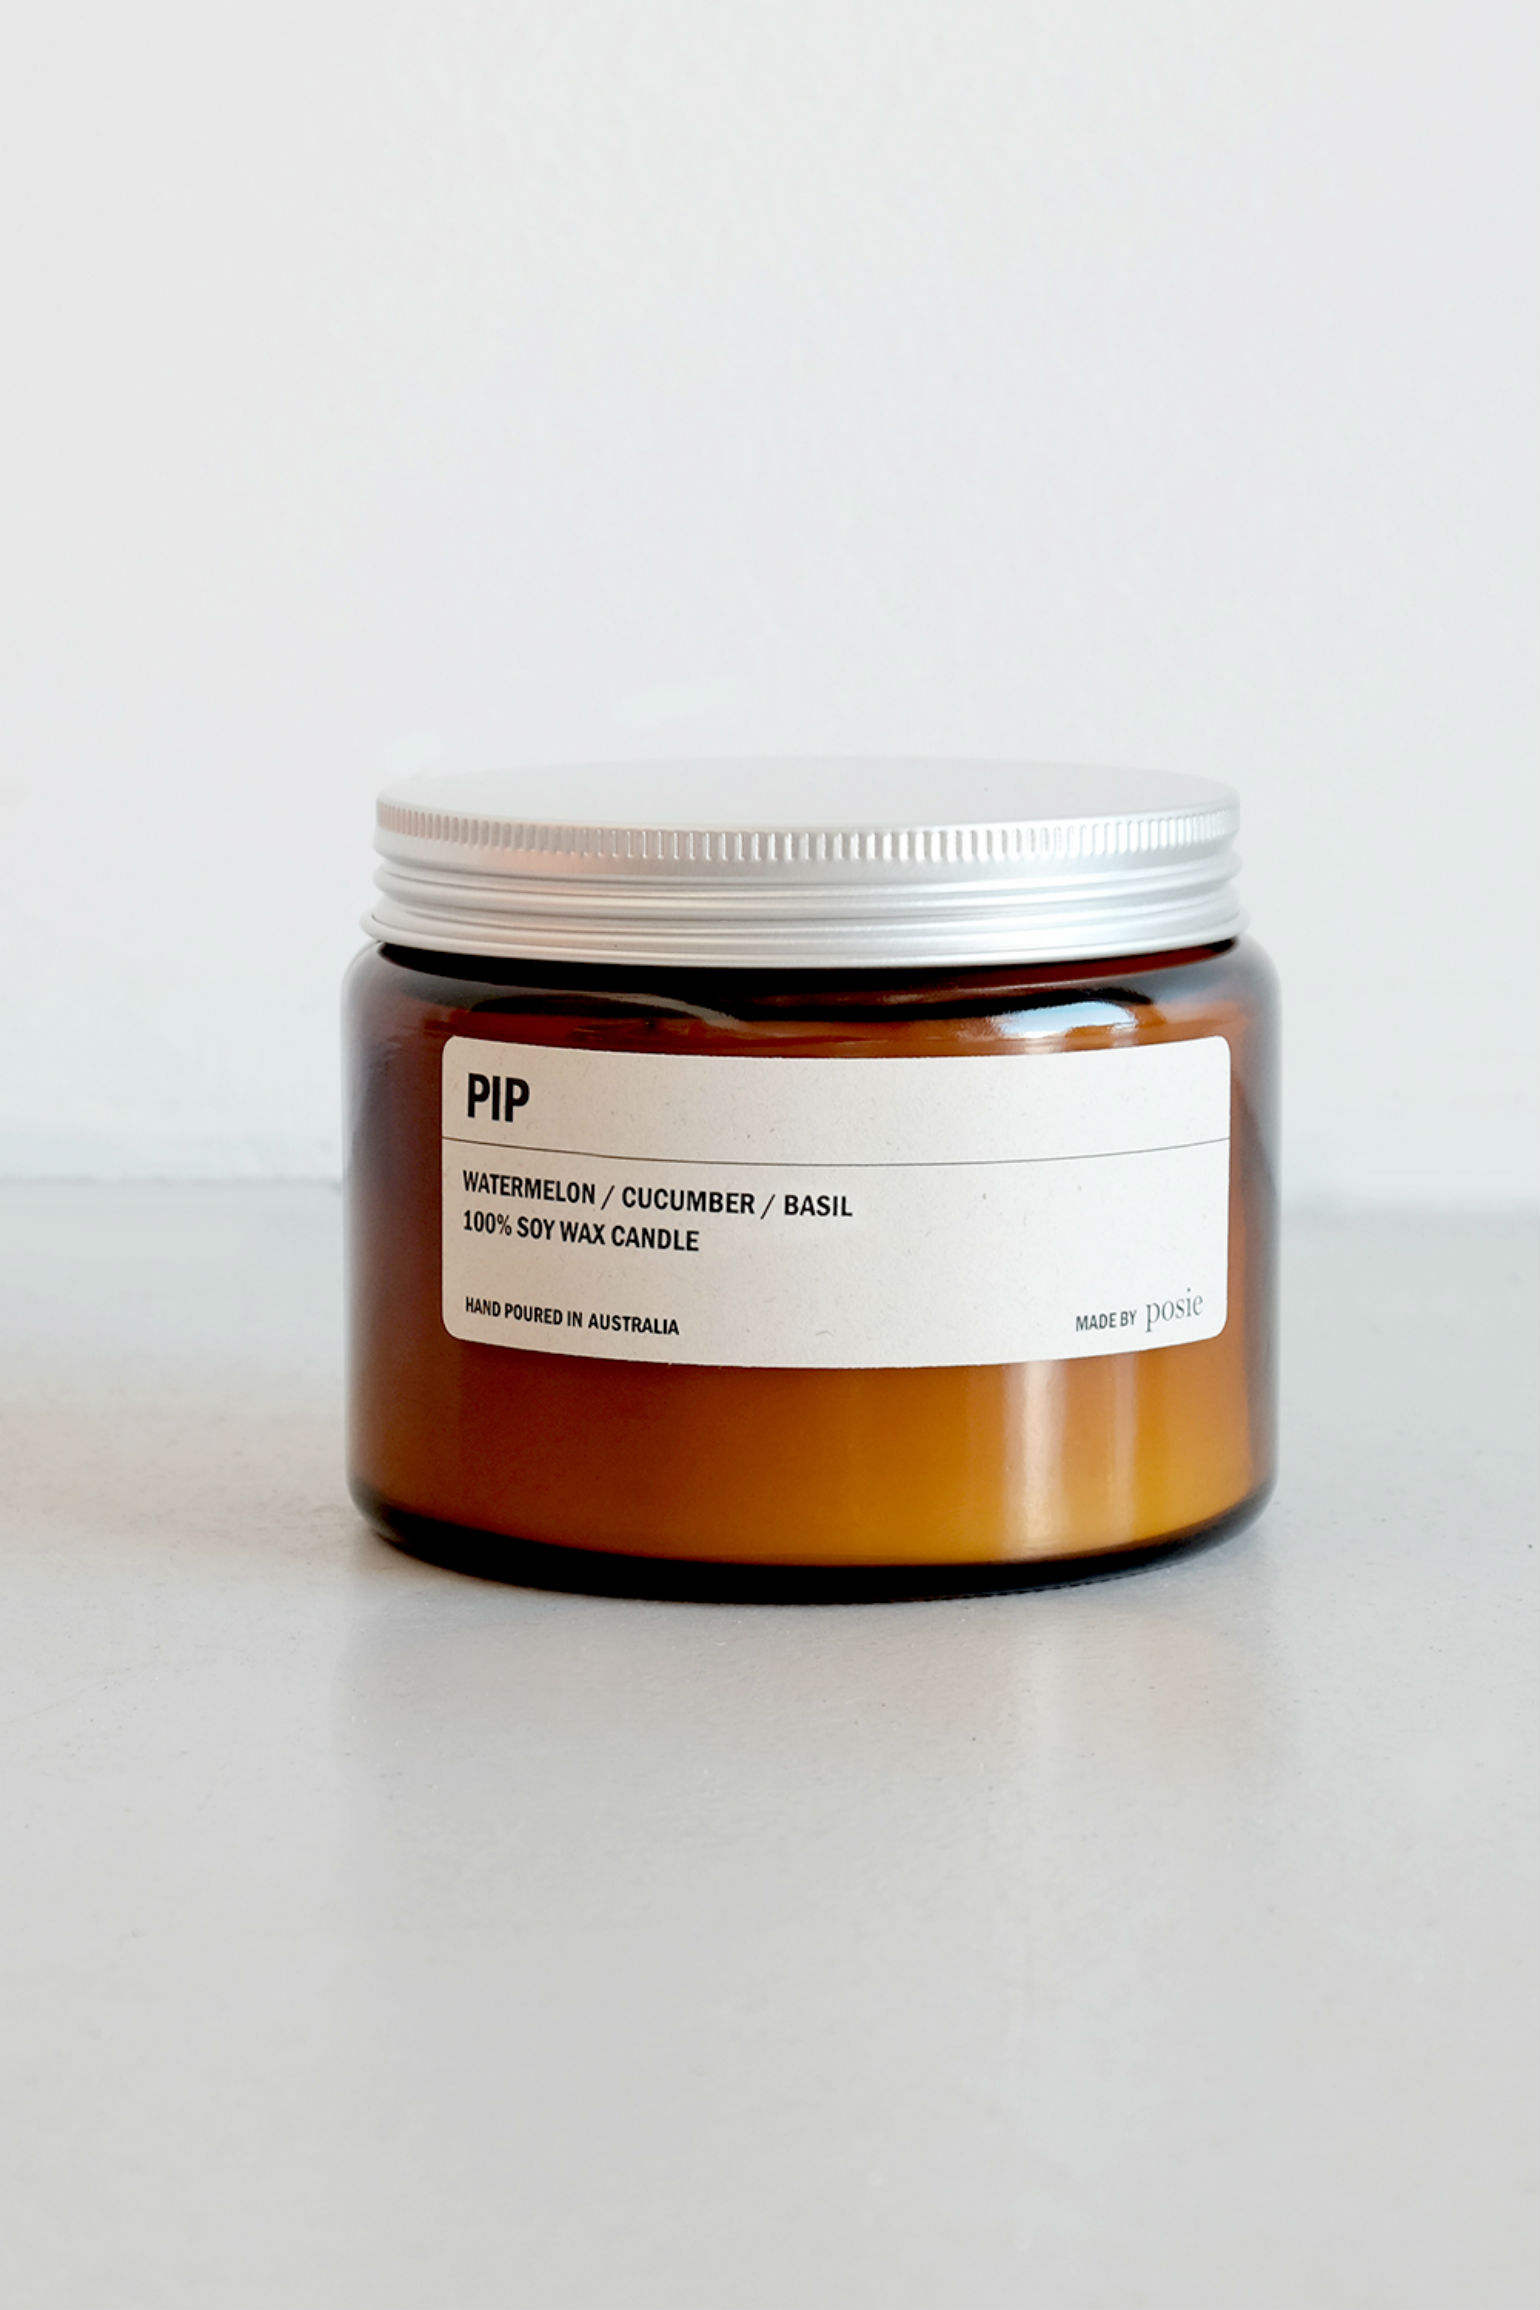 We are Posie 500g Amber Jar Soy Candle PIP